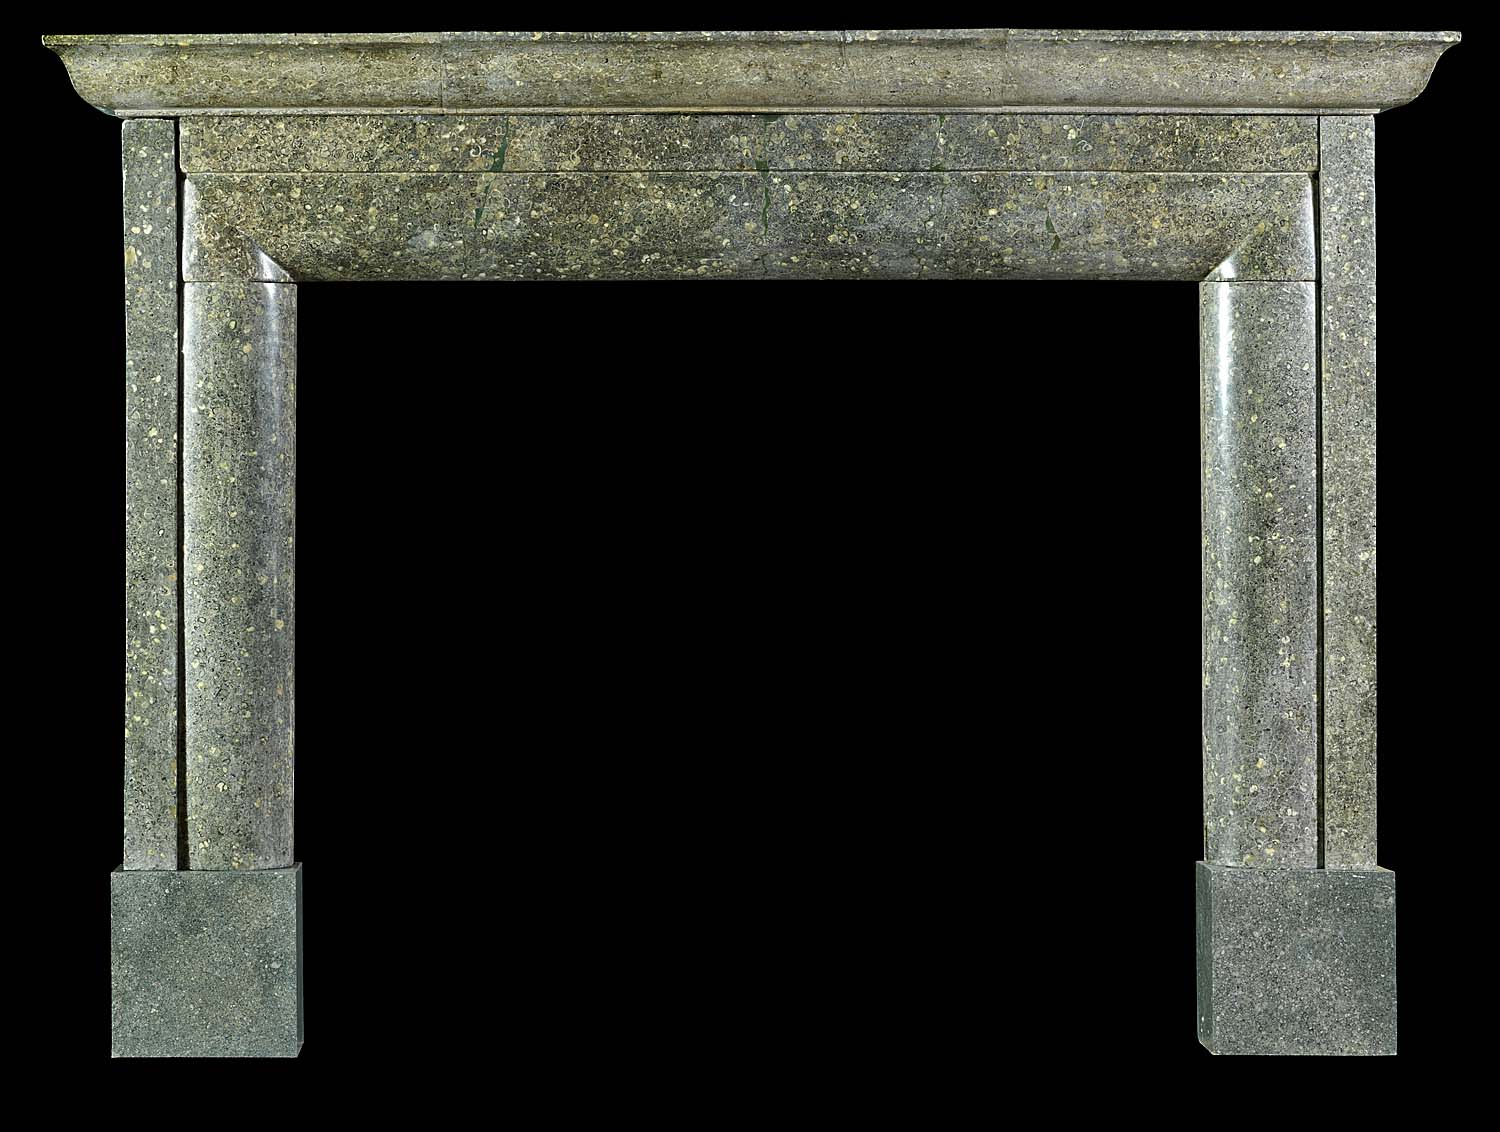 Antique Bolection fireplace in Fossil Purbeck Green Marble  A large Purbeck Green Marble chimneypiece in unadorned elegance.